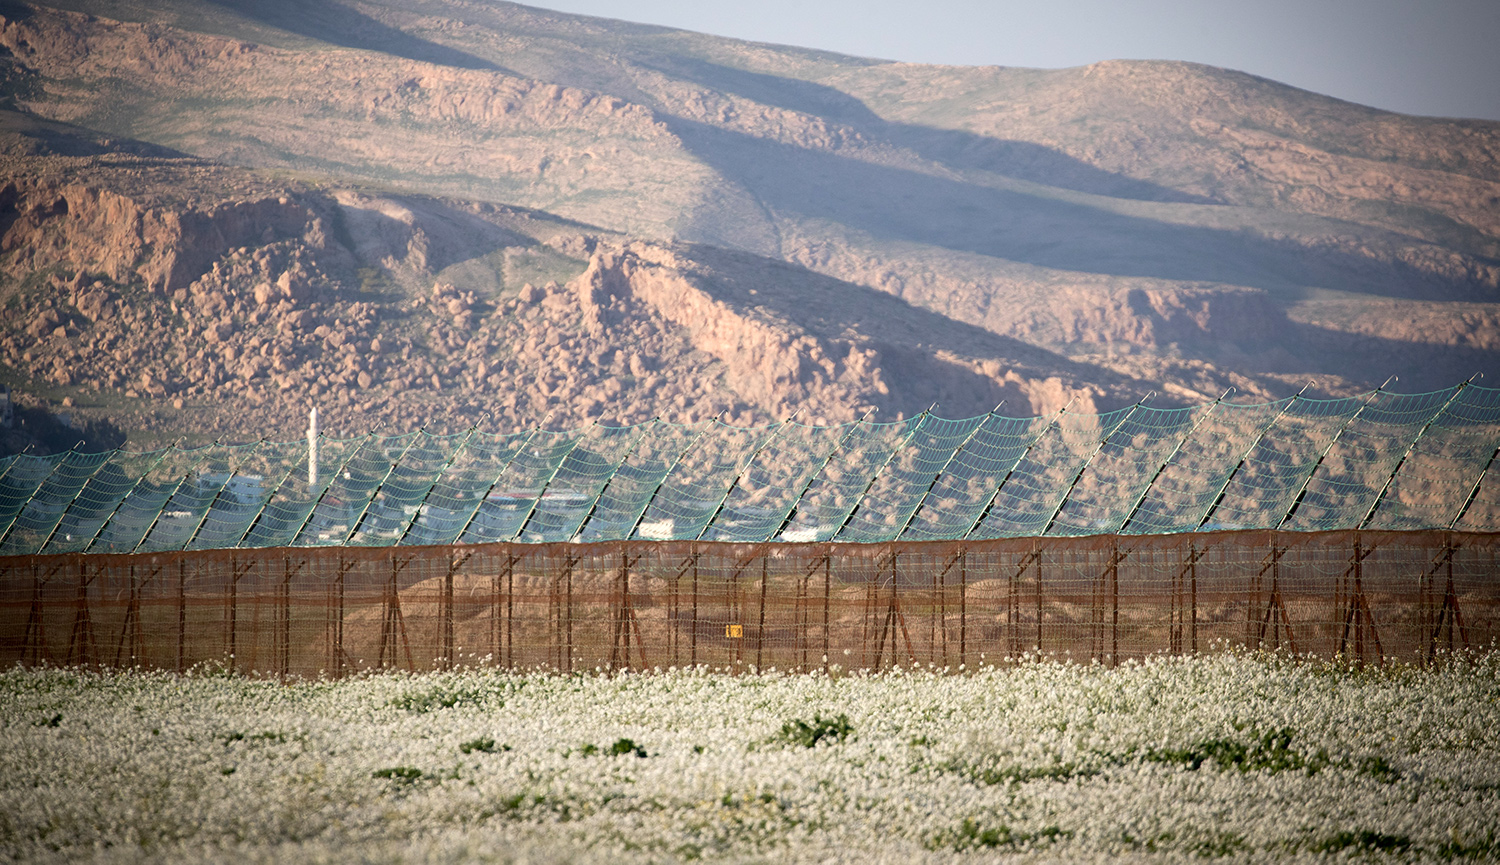 View of the border fence between Israel and Jordan in the Jordan Valley on February 13, 2019. Yonatan Sindel/Flash90.